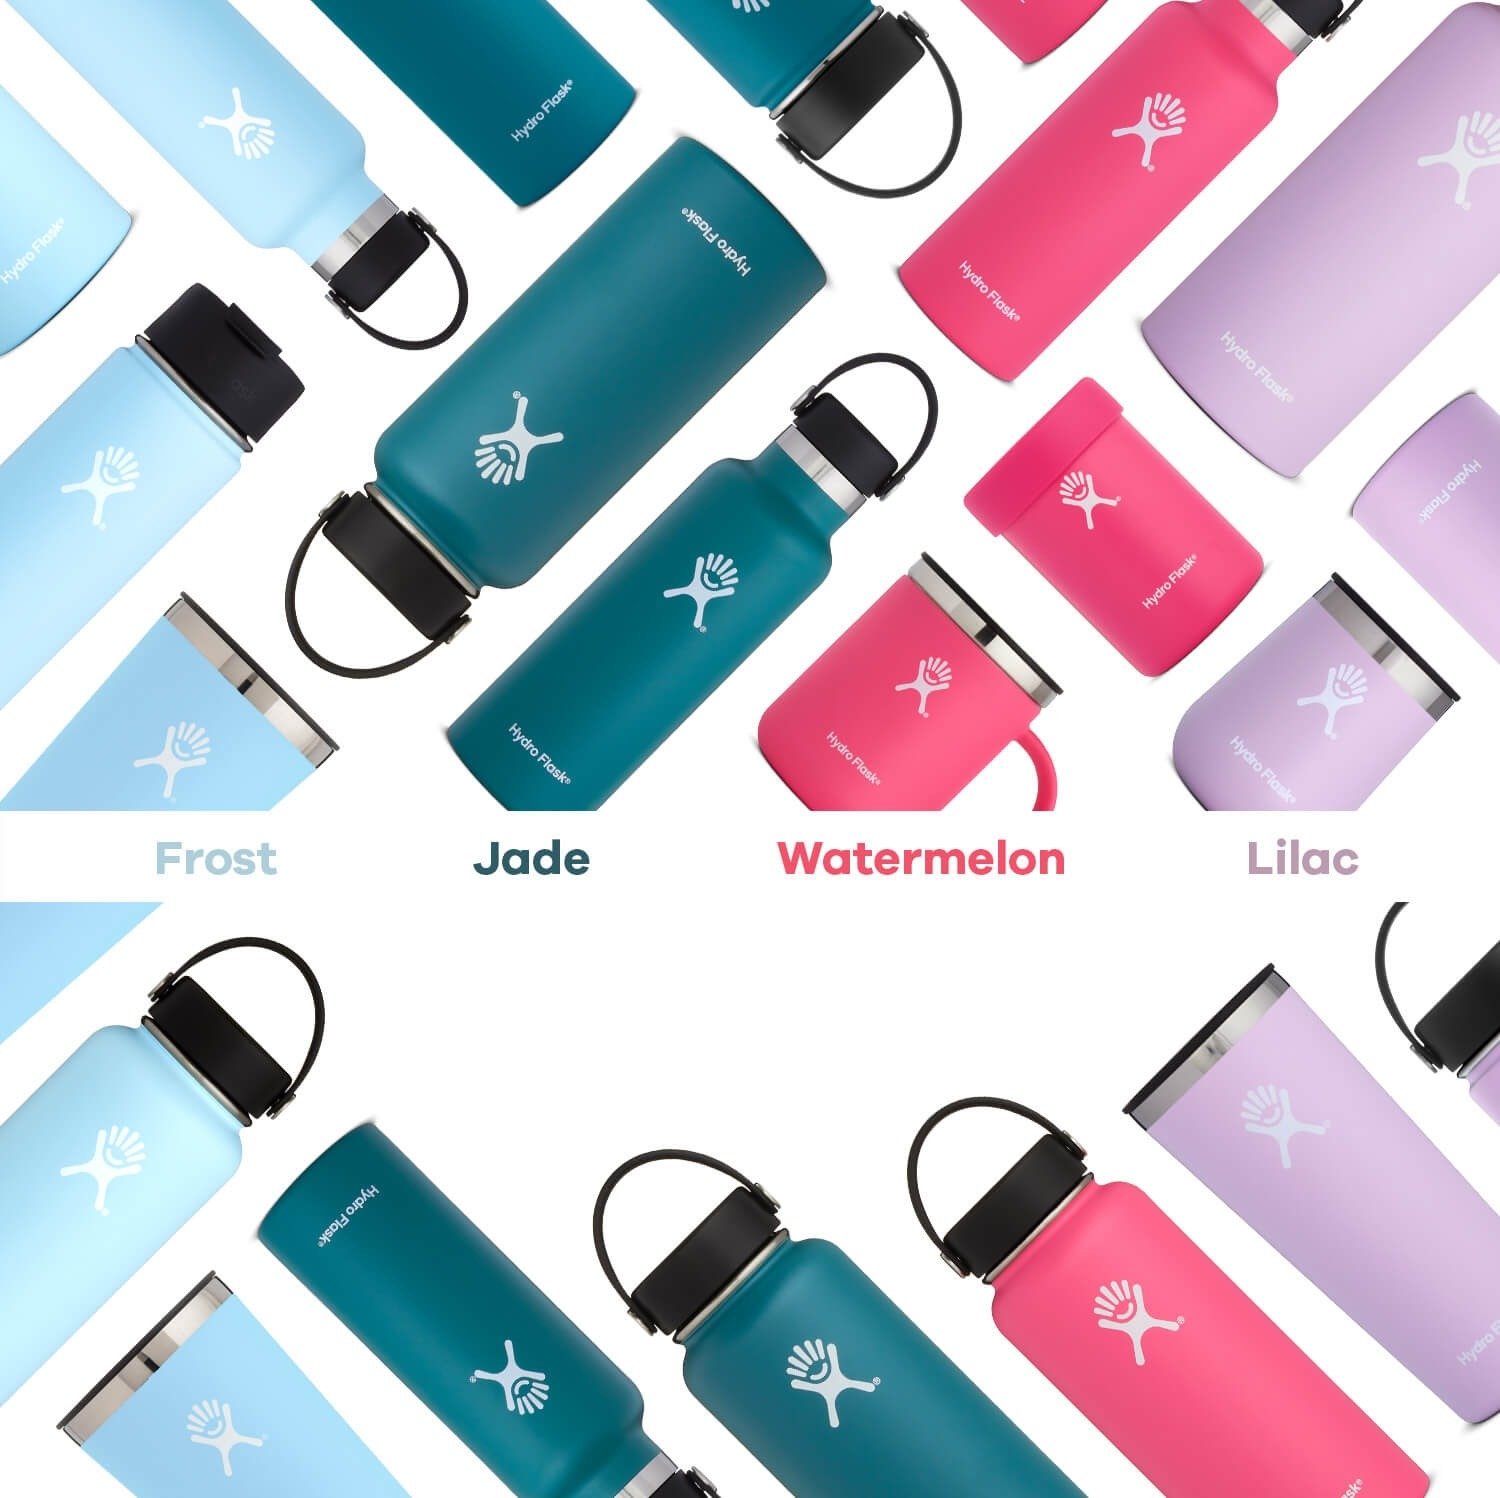 Mobile - Introducing new colors: Jade, Lilac, Watermelon, and Frost.